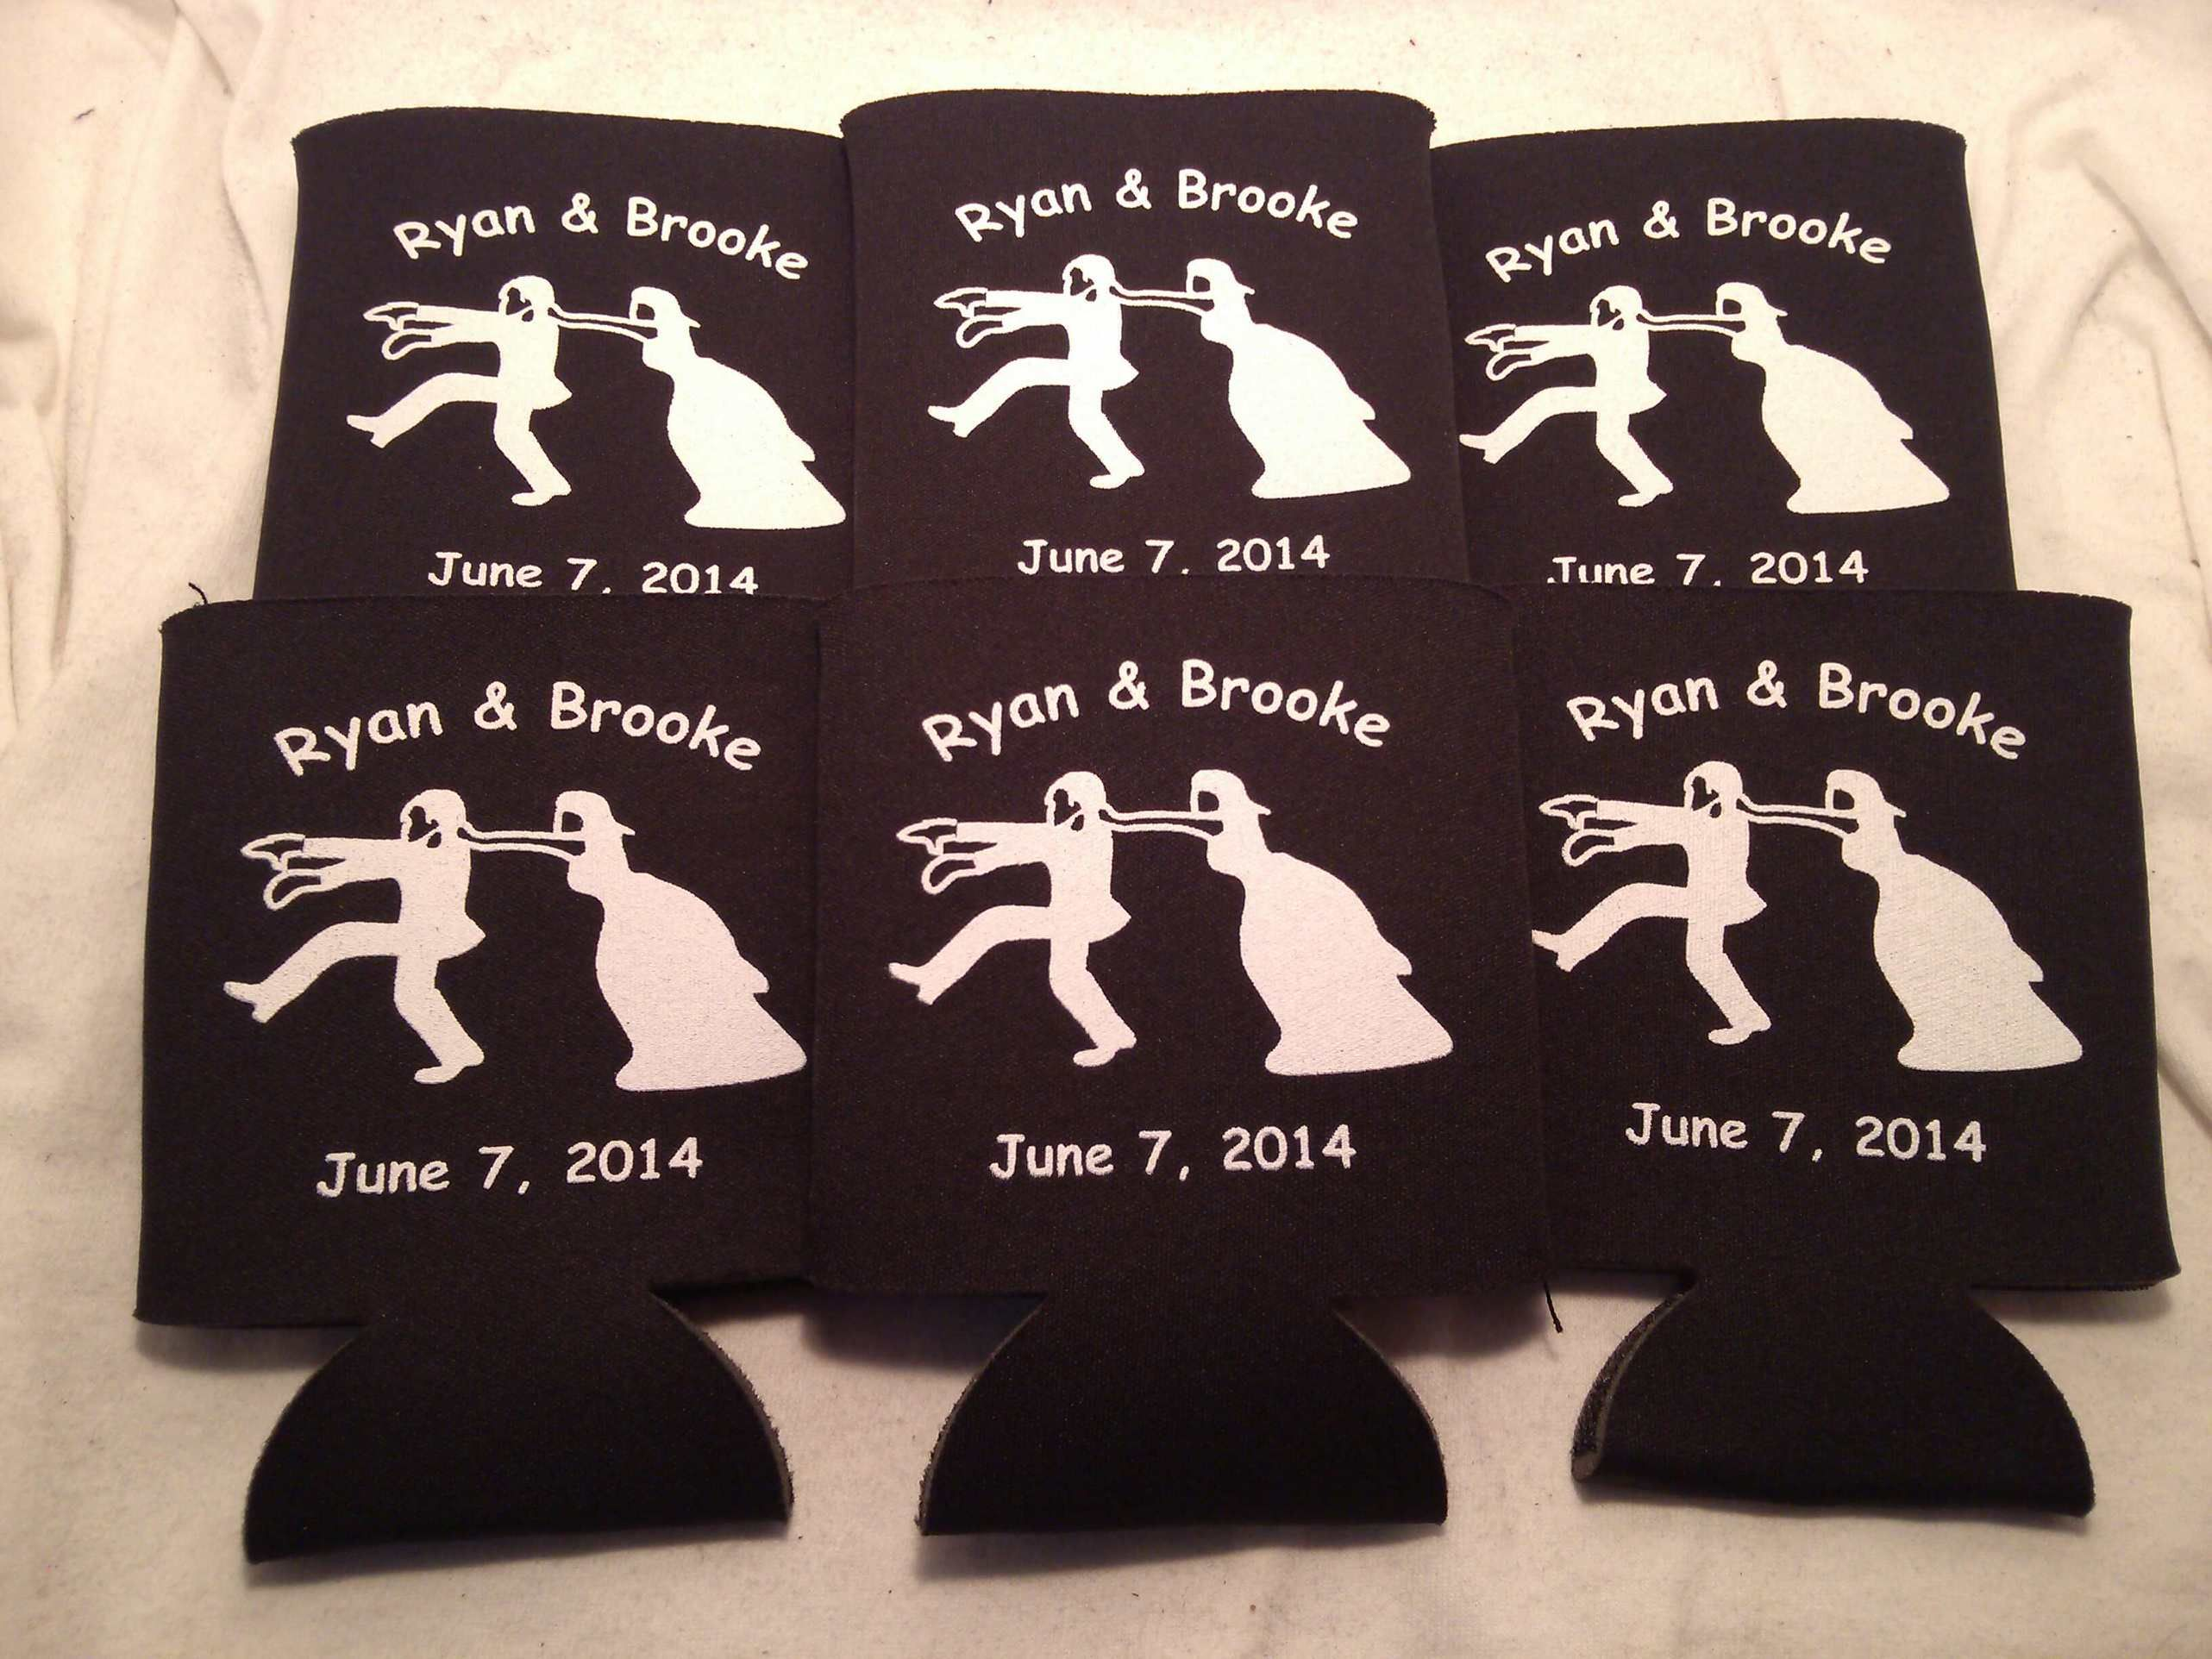 Wedding Koozies Custom Printed Are The Perfect Favors For Your Day